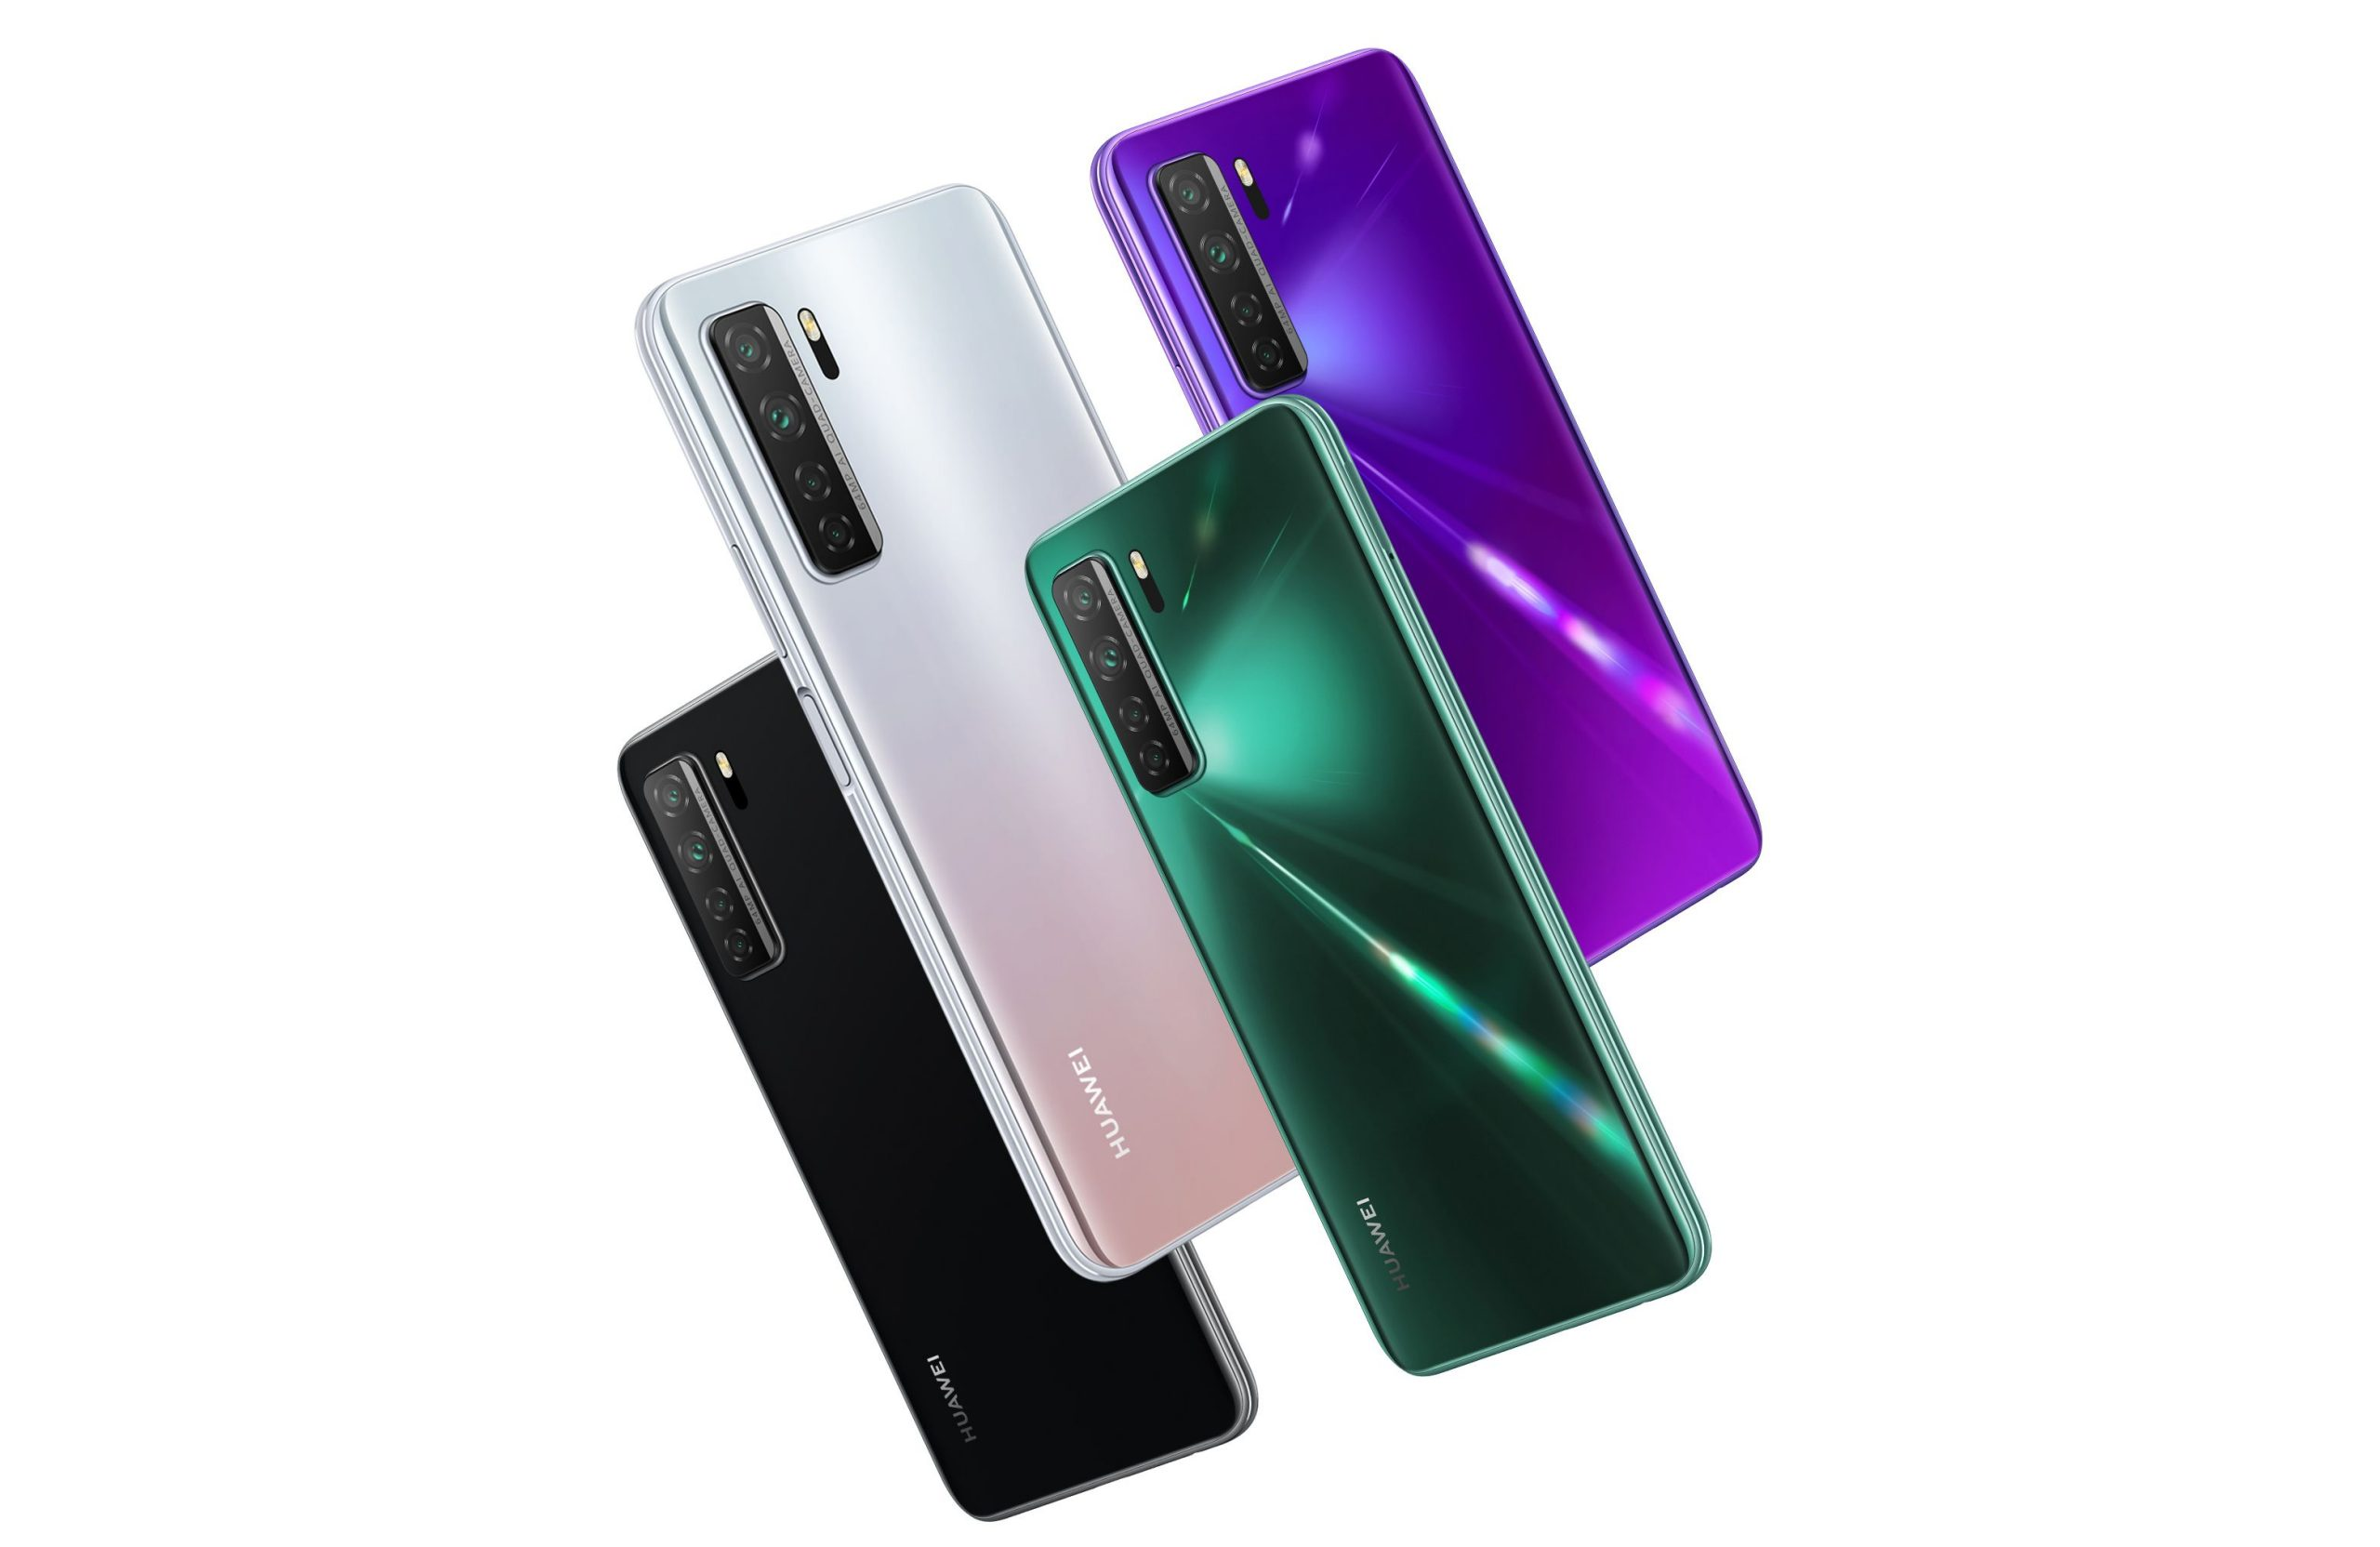 Huawei Nova 7 SE 5G Vitality Edition with Dimensity 800U launched for 2,299 Yuan (~$342)